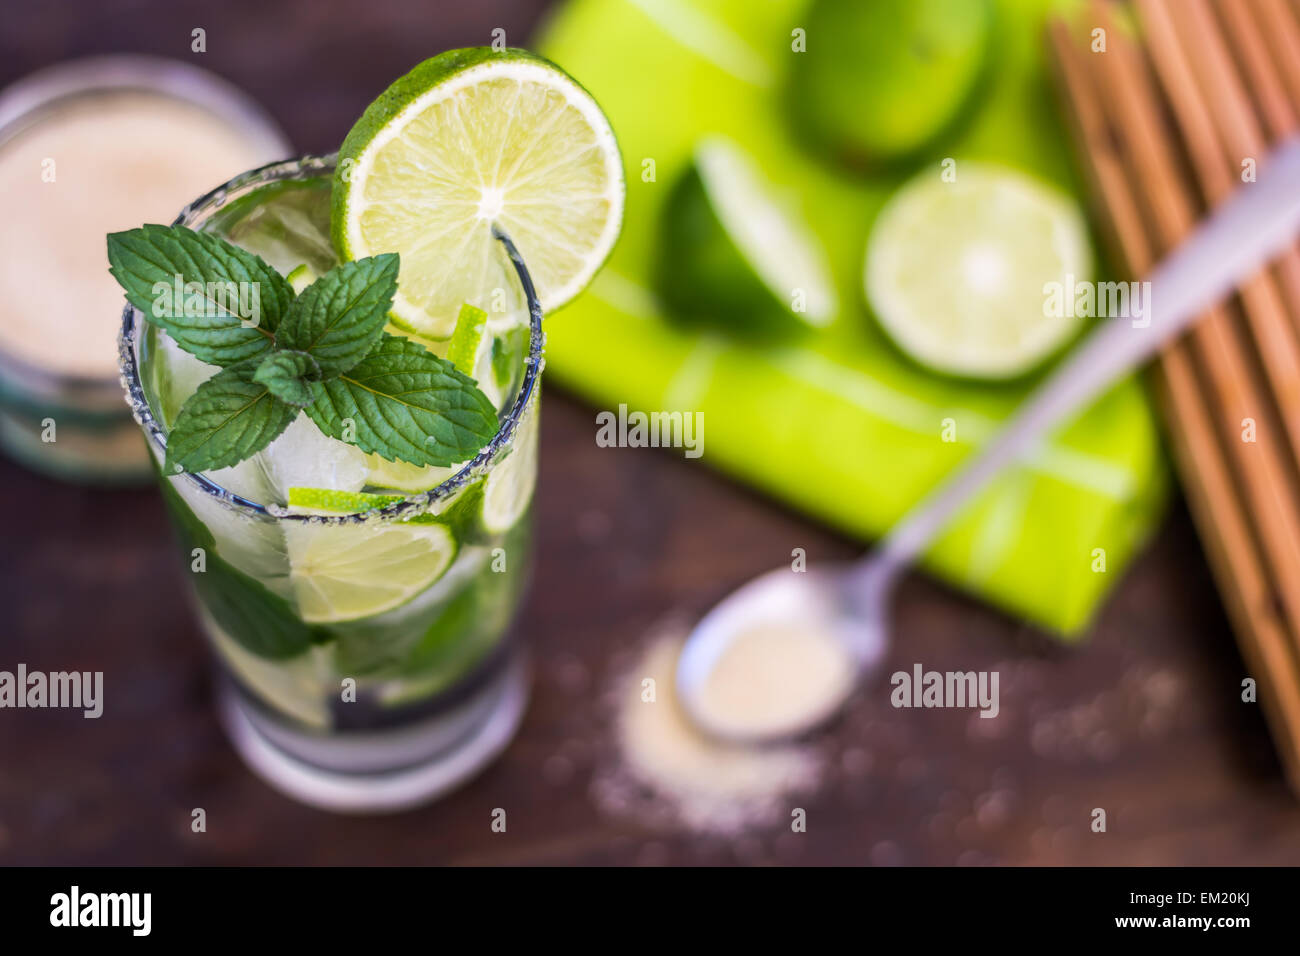 Mojito Lime Alcoholic Drink Cocktail on Wooden Table - Stock Image